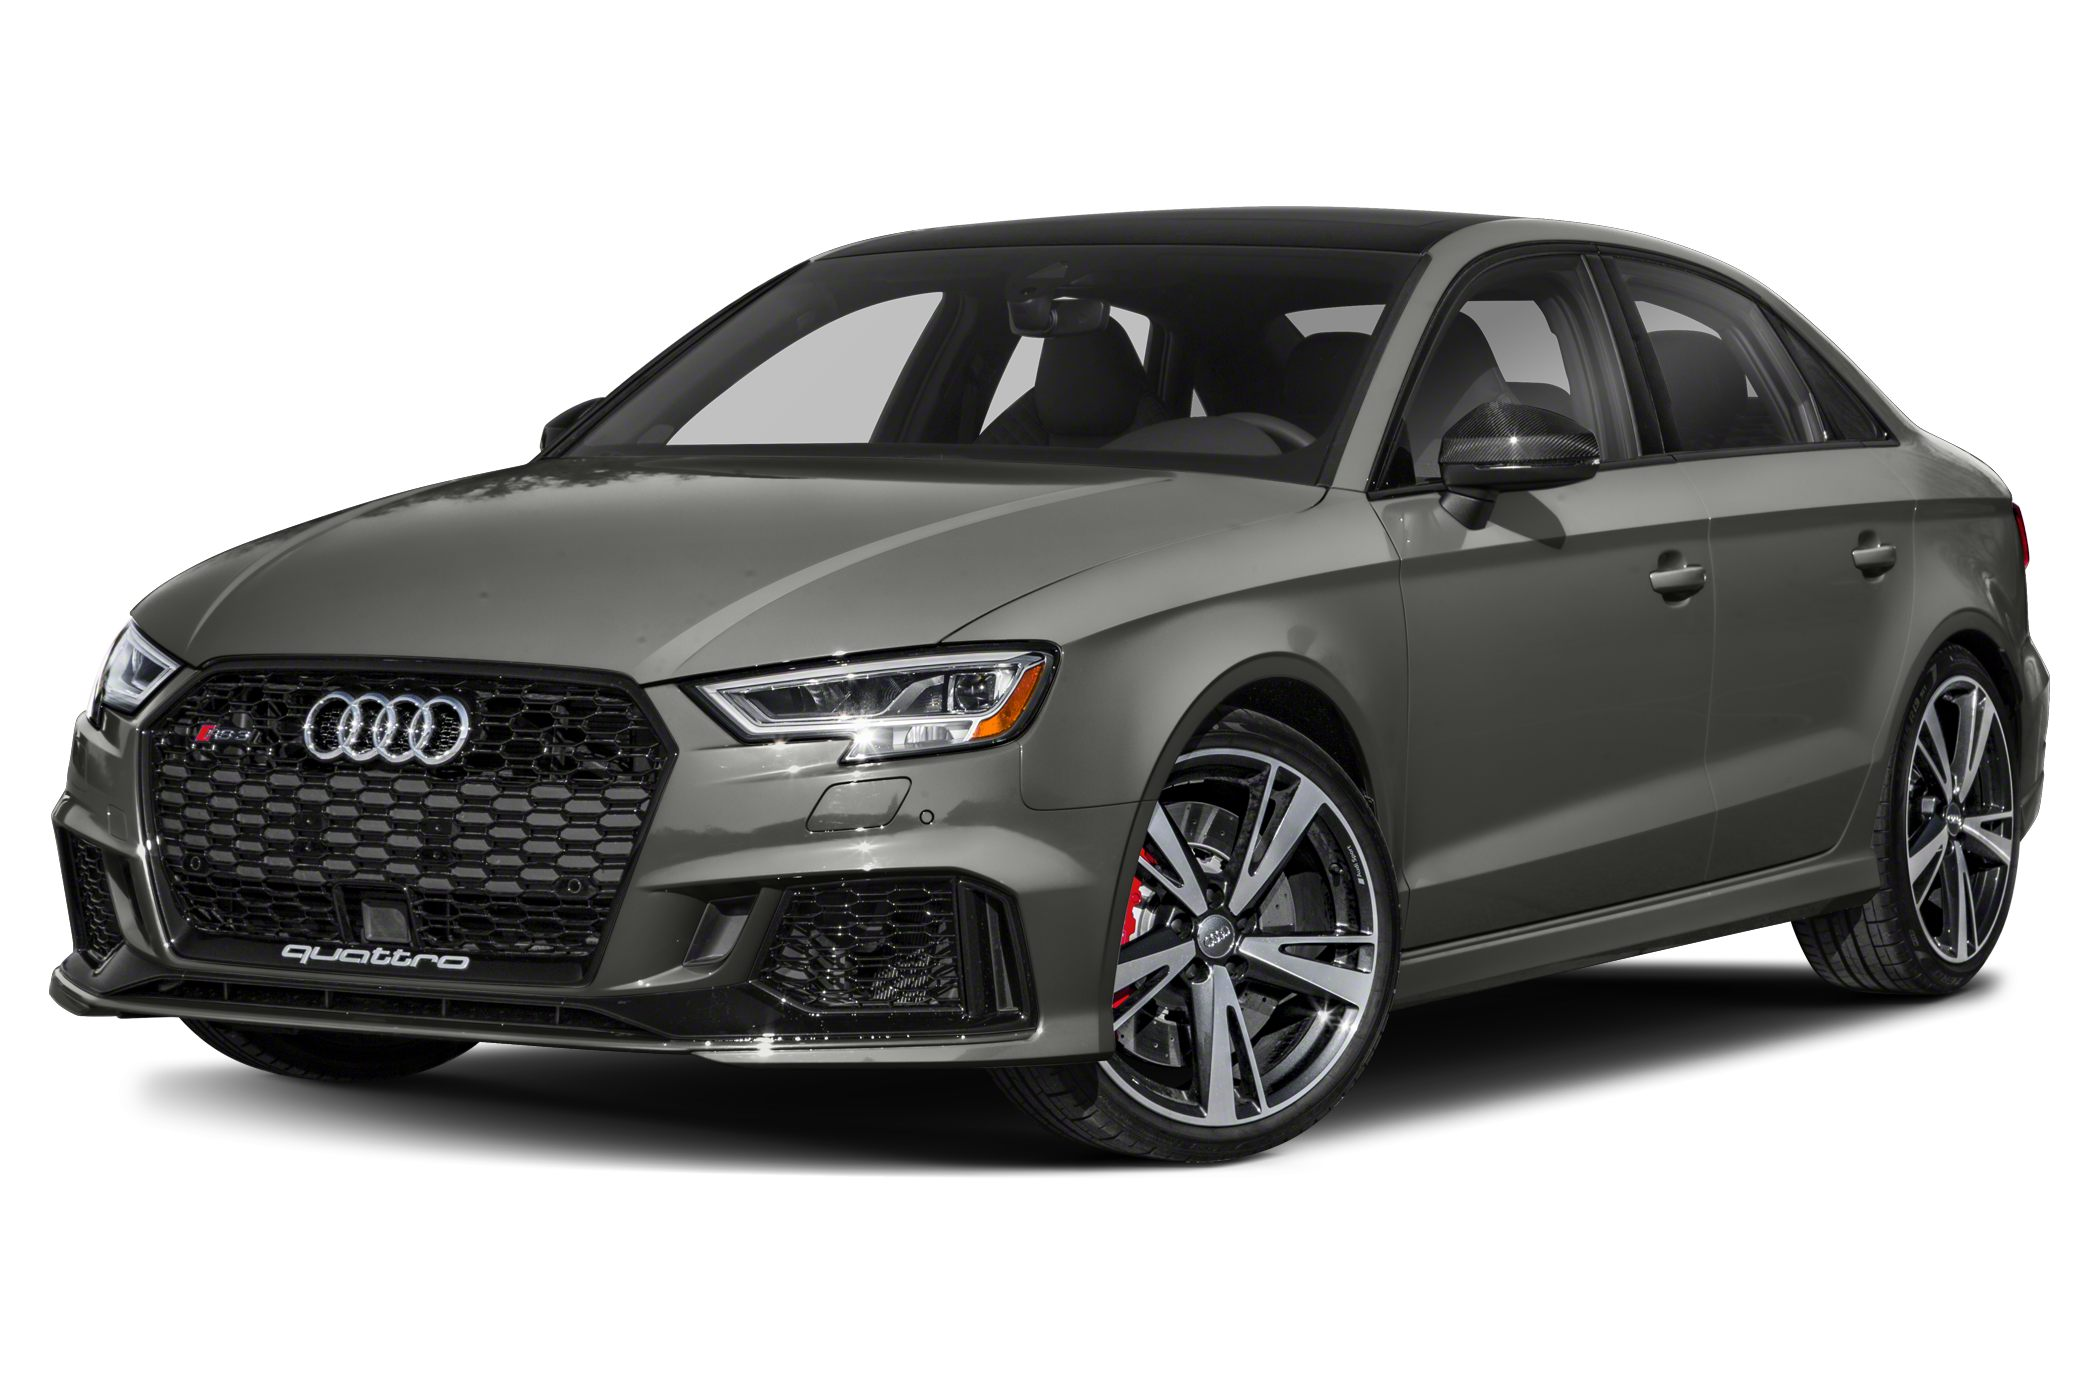 2020 Audi Rs 3 2 5t 4dr All Wheel Drive Quattro Sedan Specs And Prices